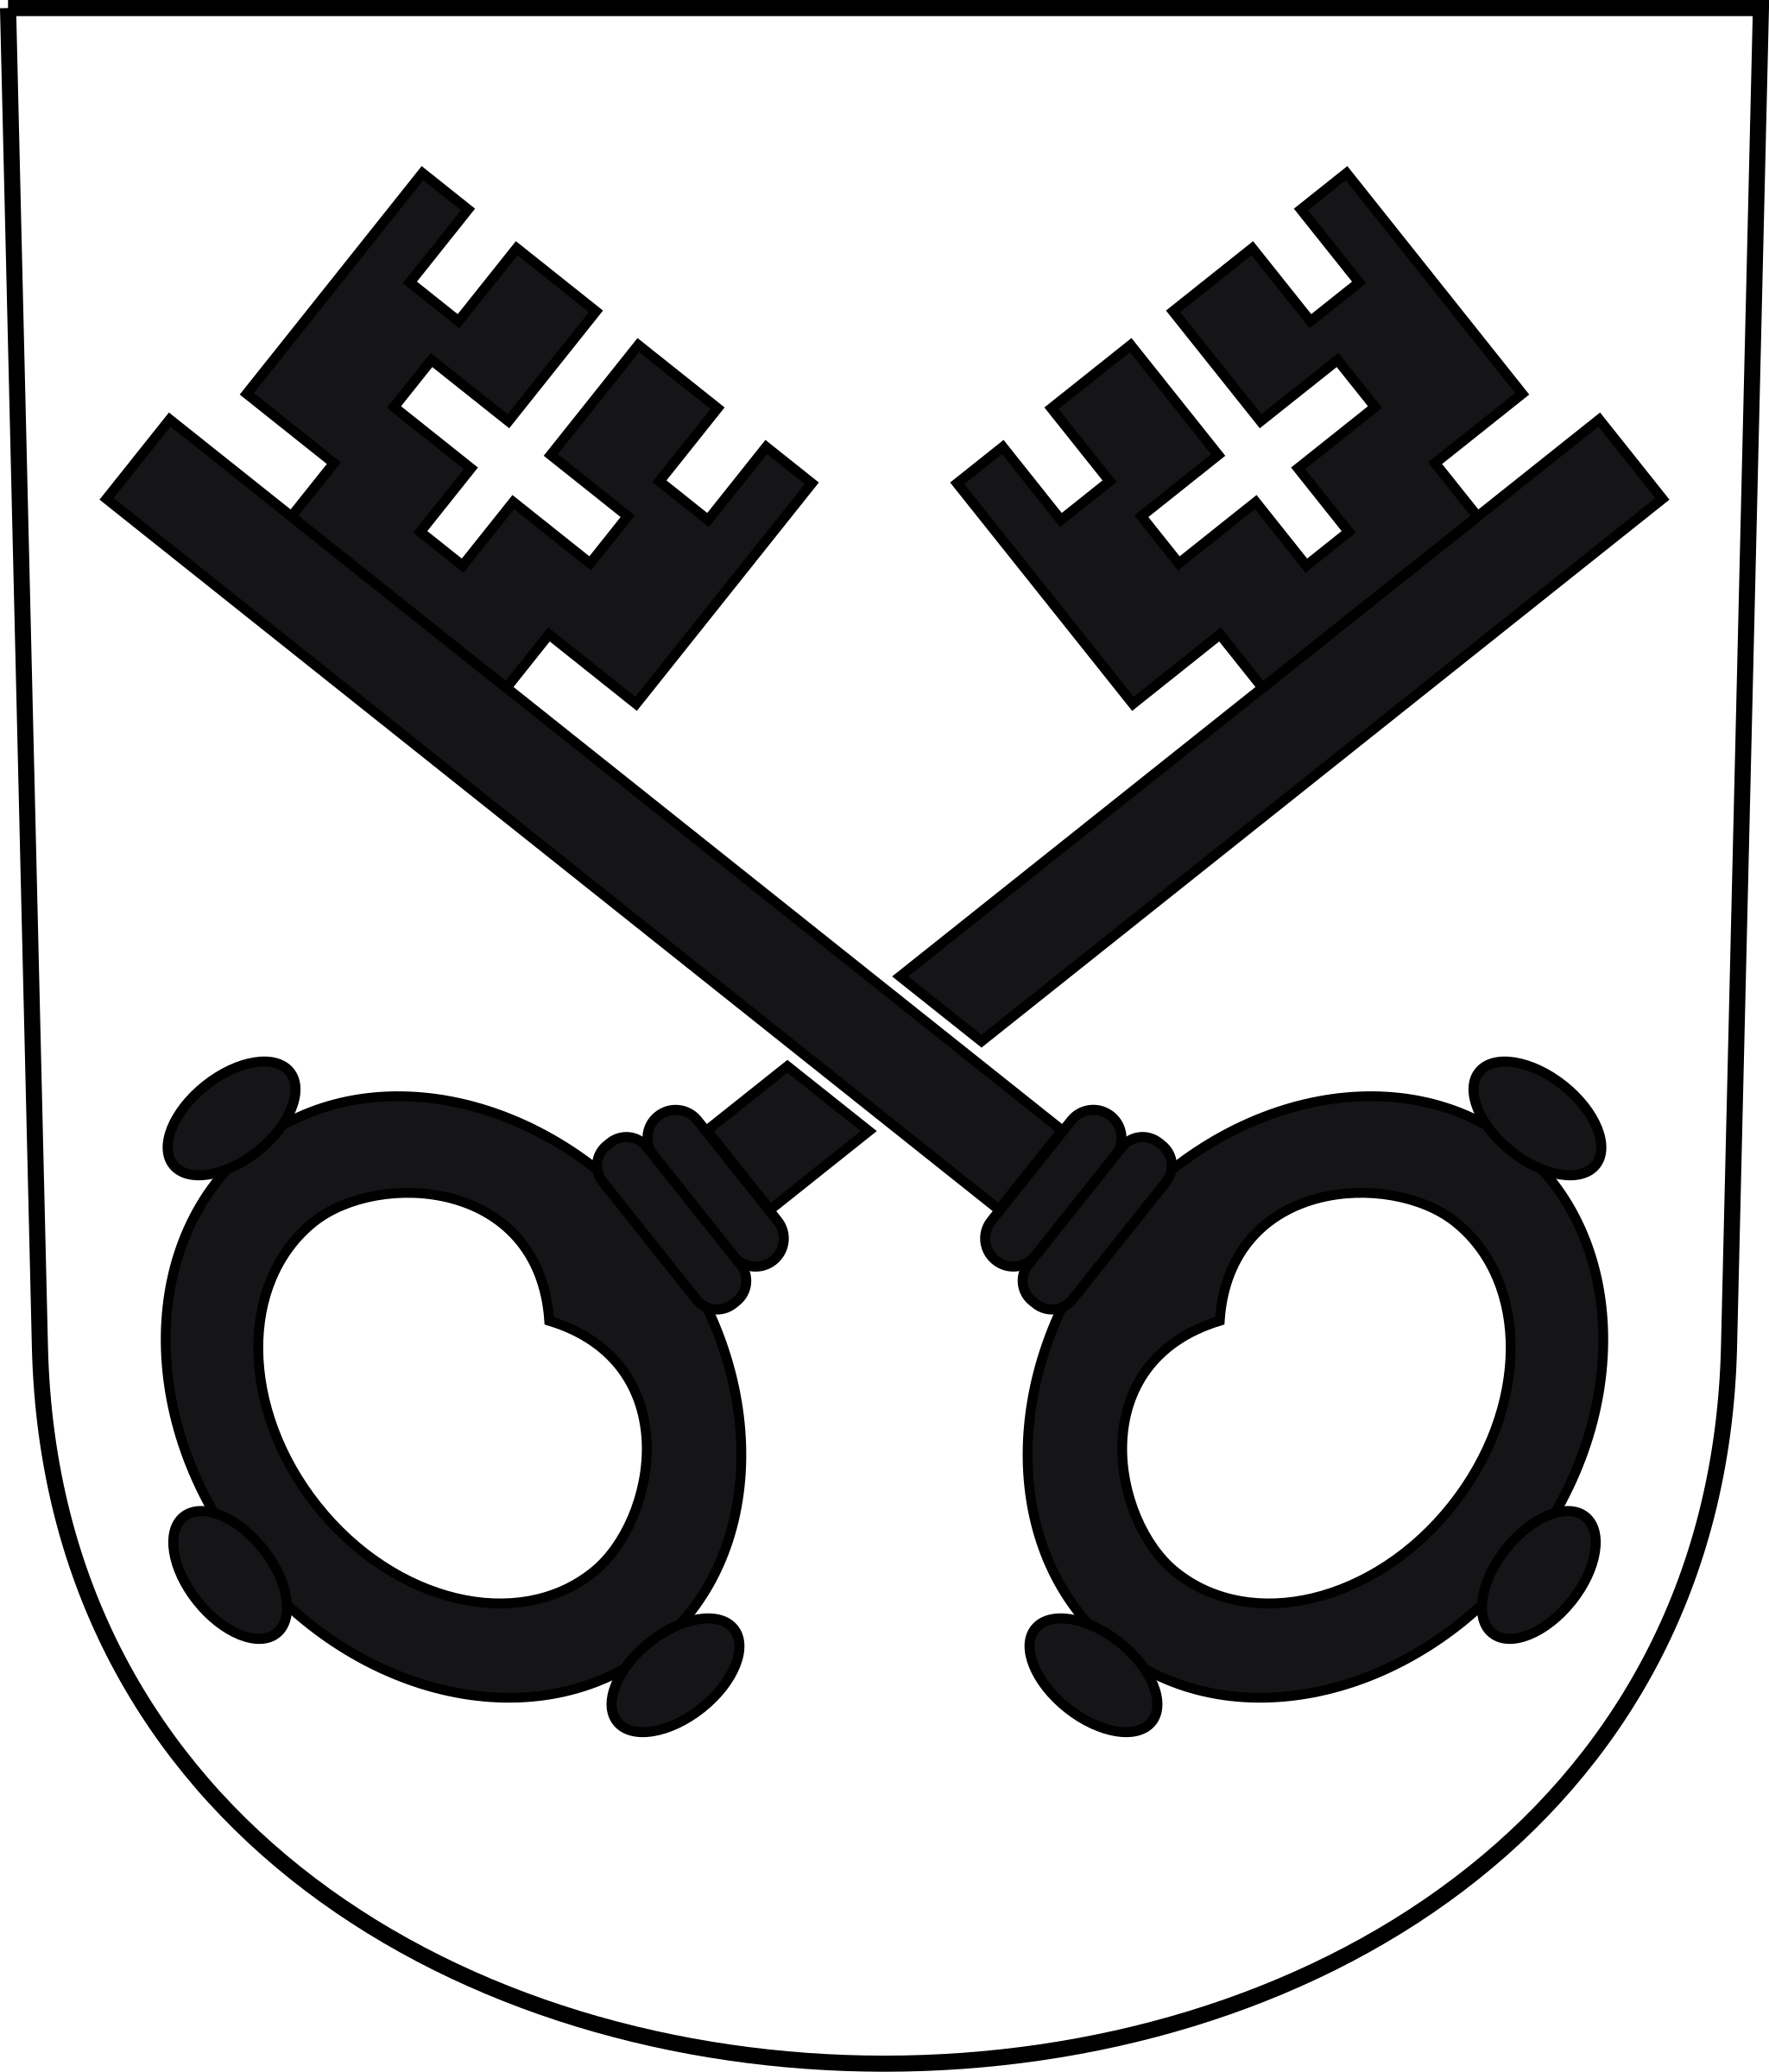 Dorf - Coat of arms by wipp